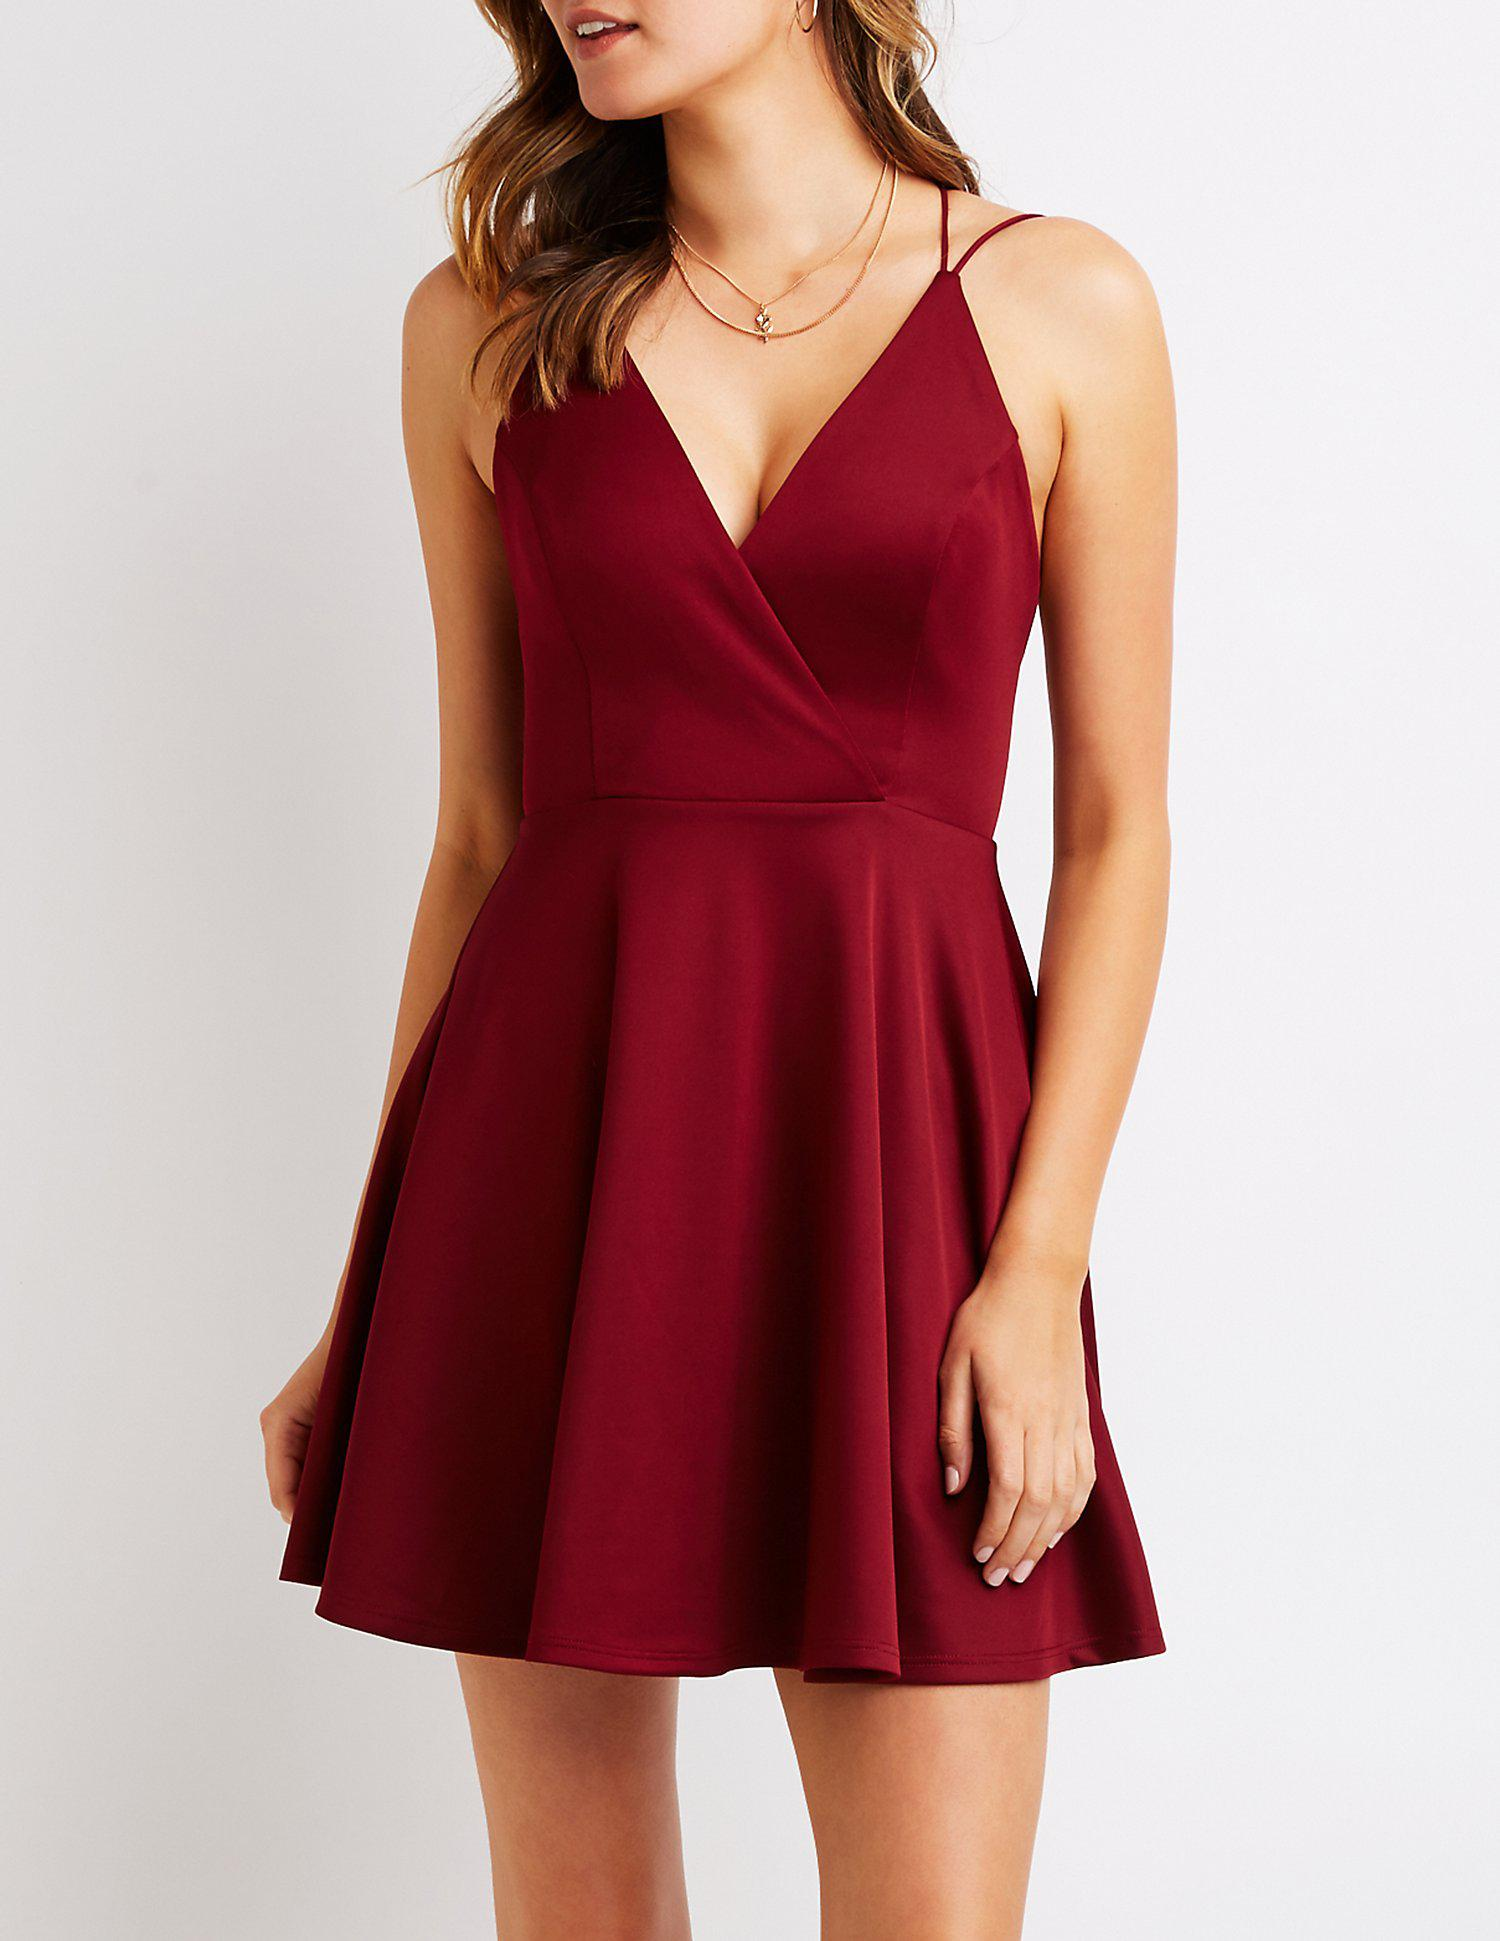 3770ea82fad5 Lyst - Charlotte Russe Strappy Open Back Skater Dress in Red